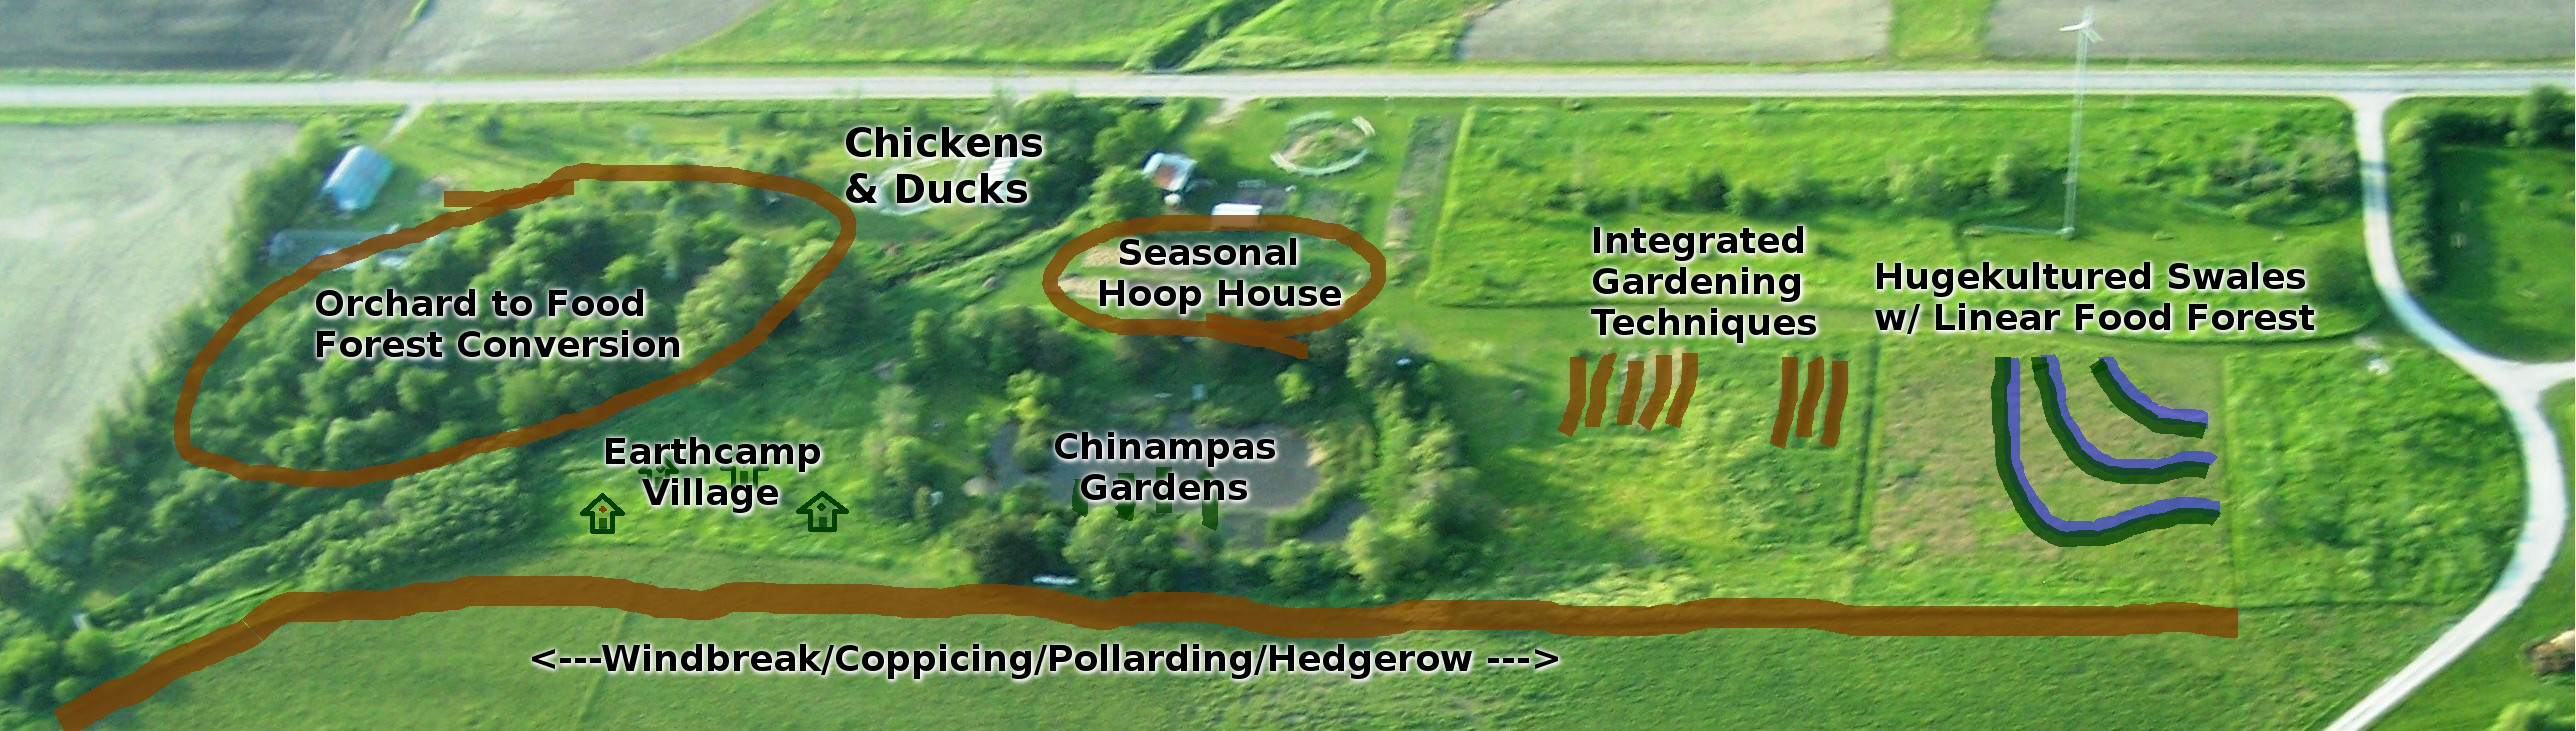 CSC-Land-Midwest-Permaculture-Design